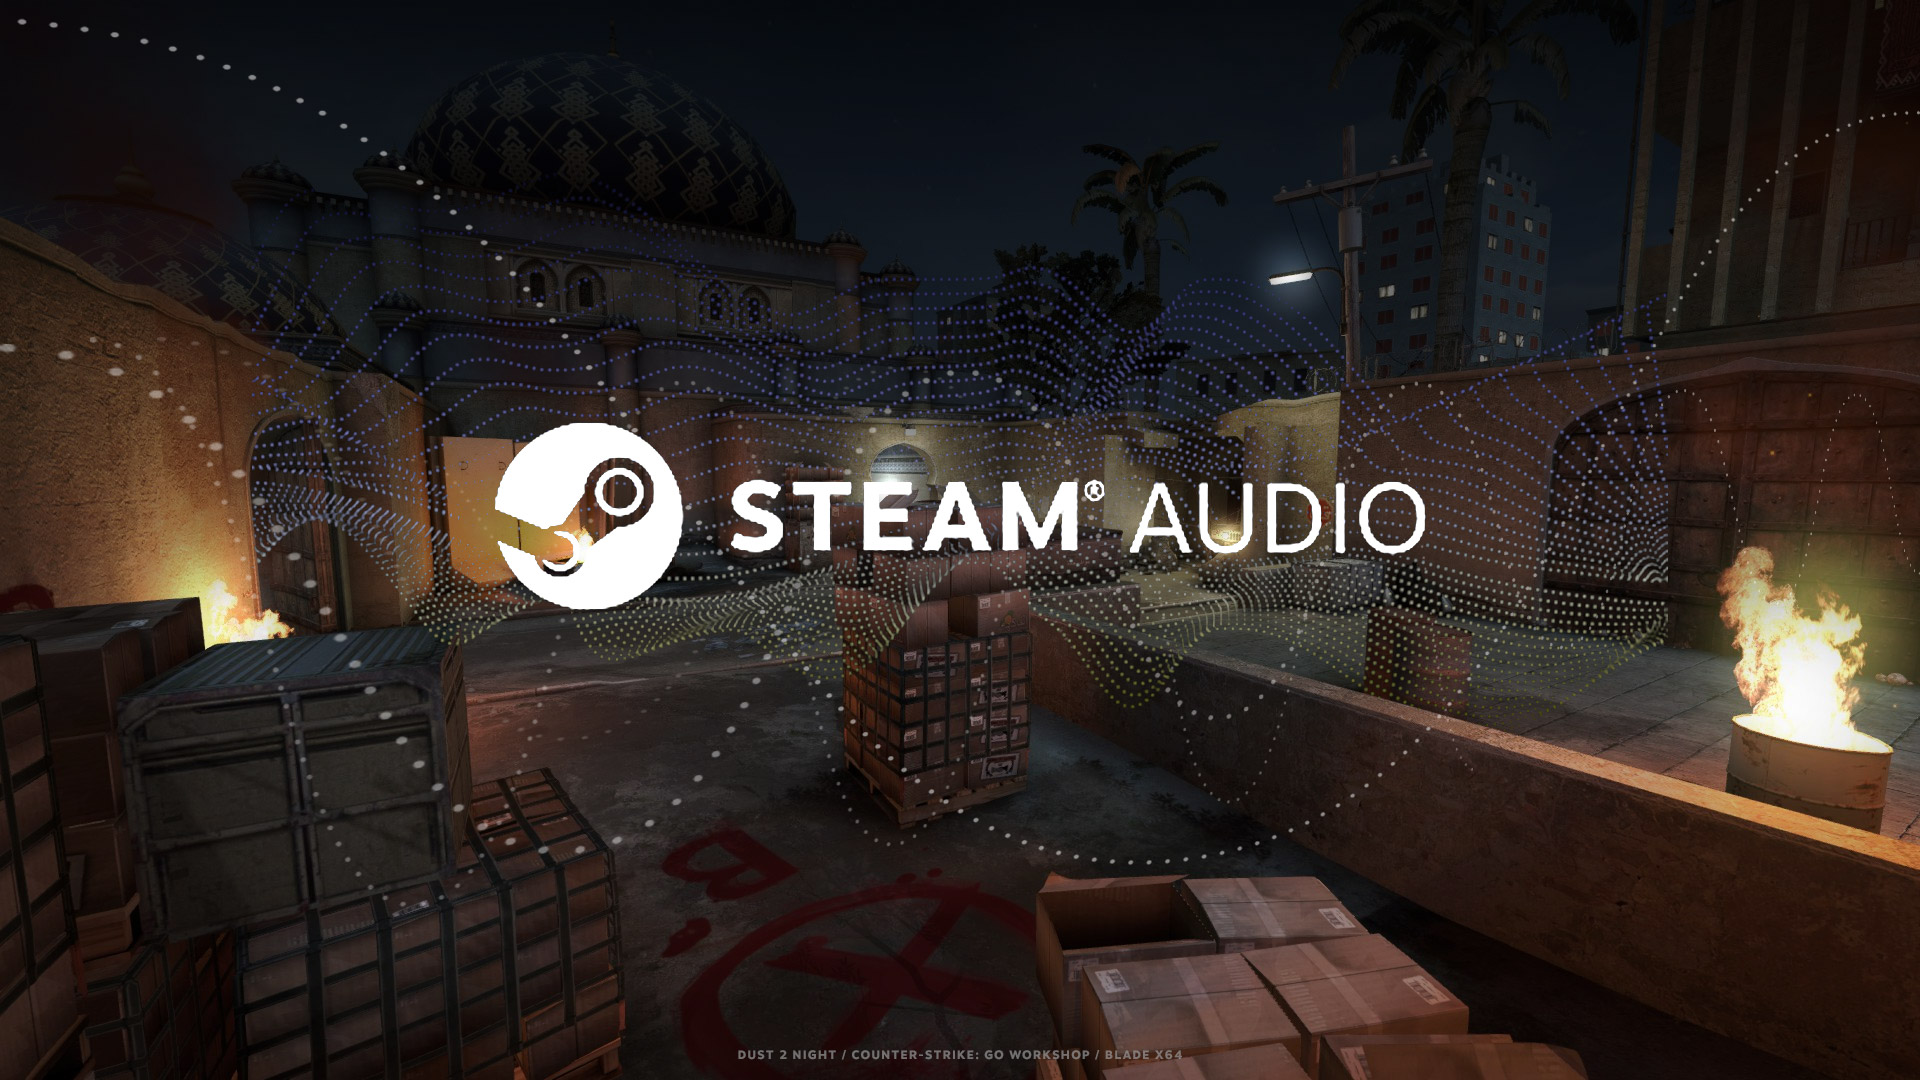 Valve Launches Free Steam Audio SDK Beta to Give VR Apps